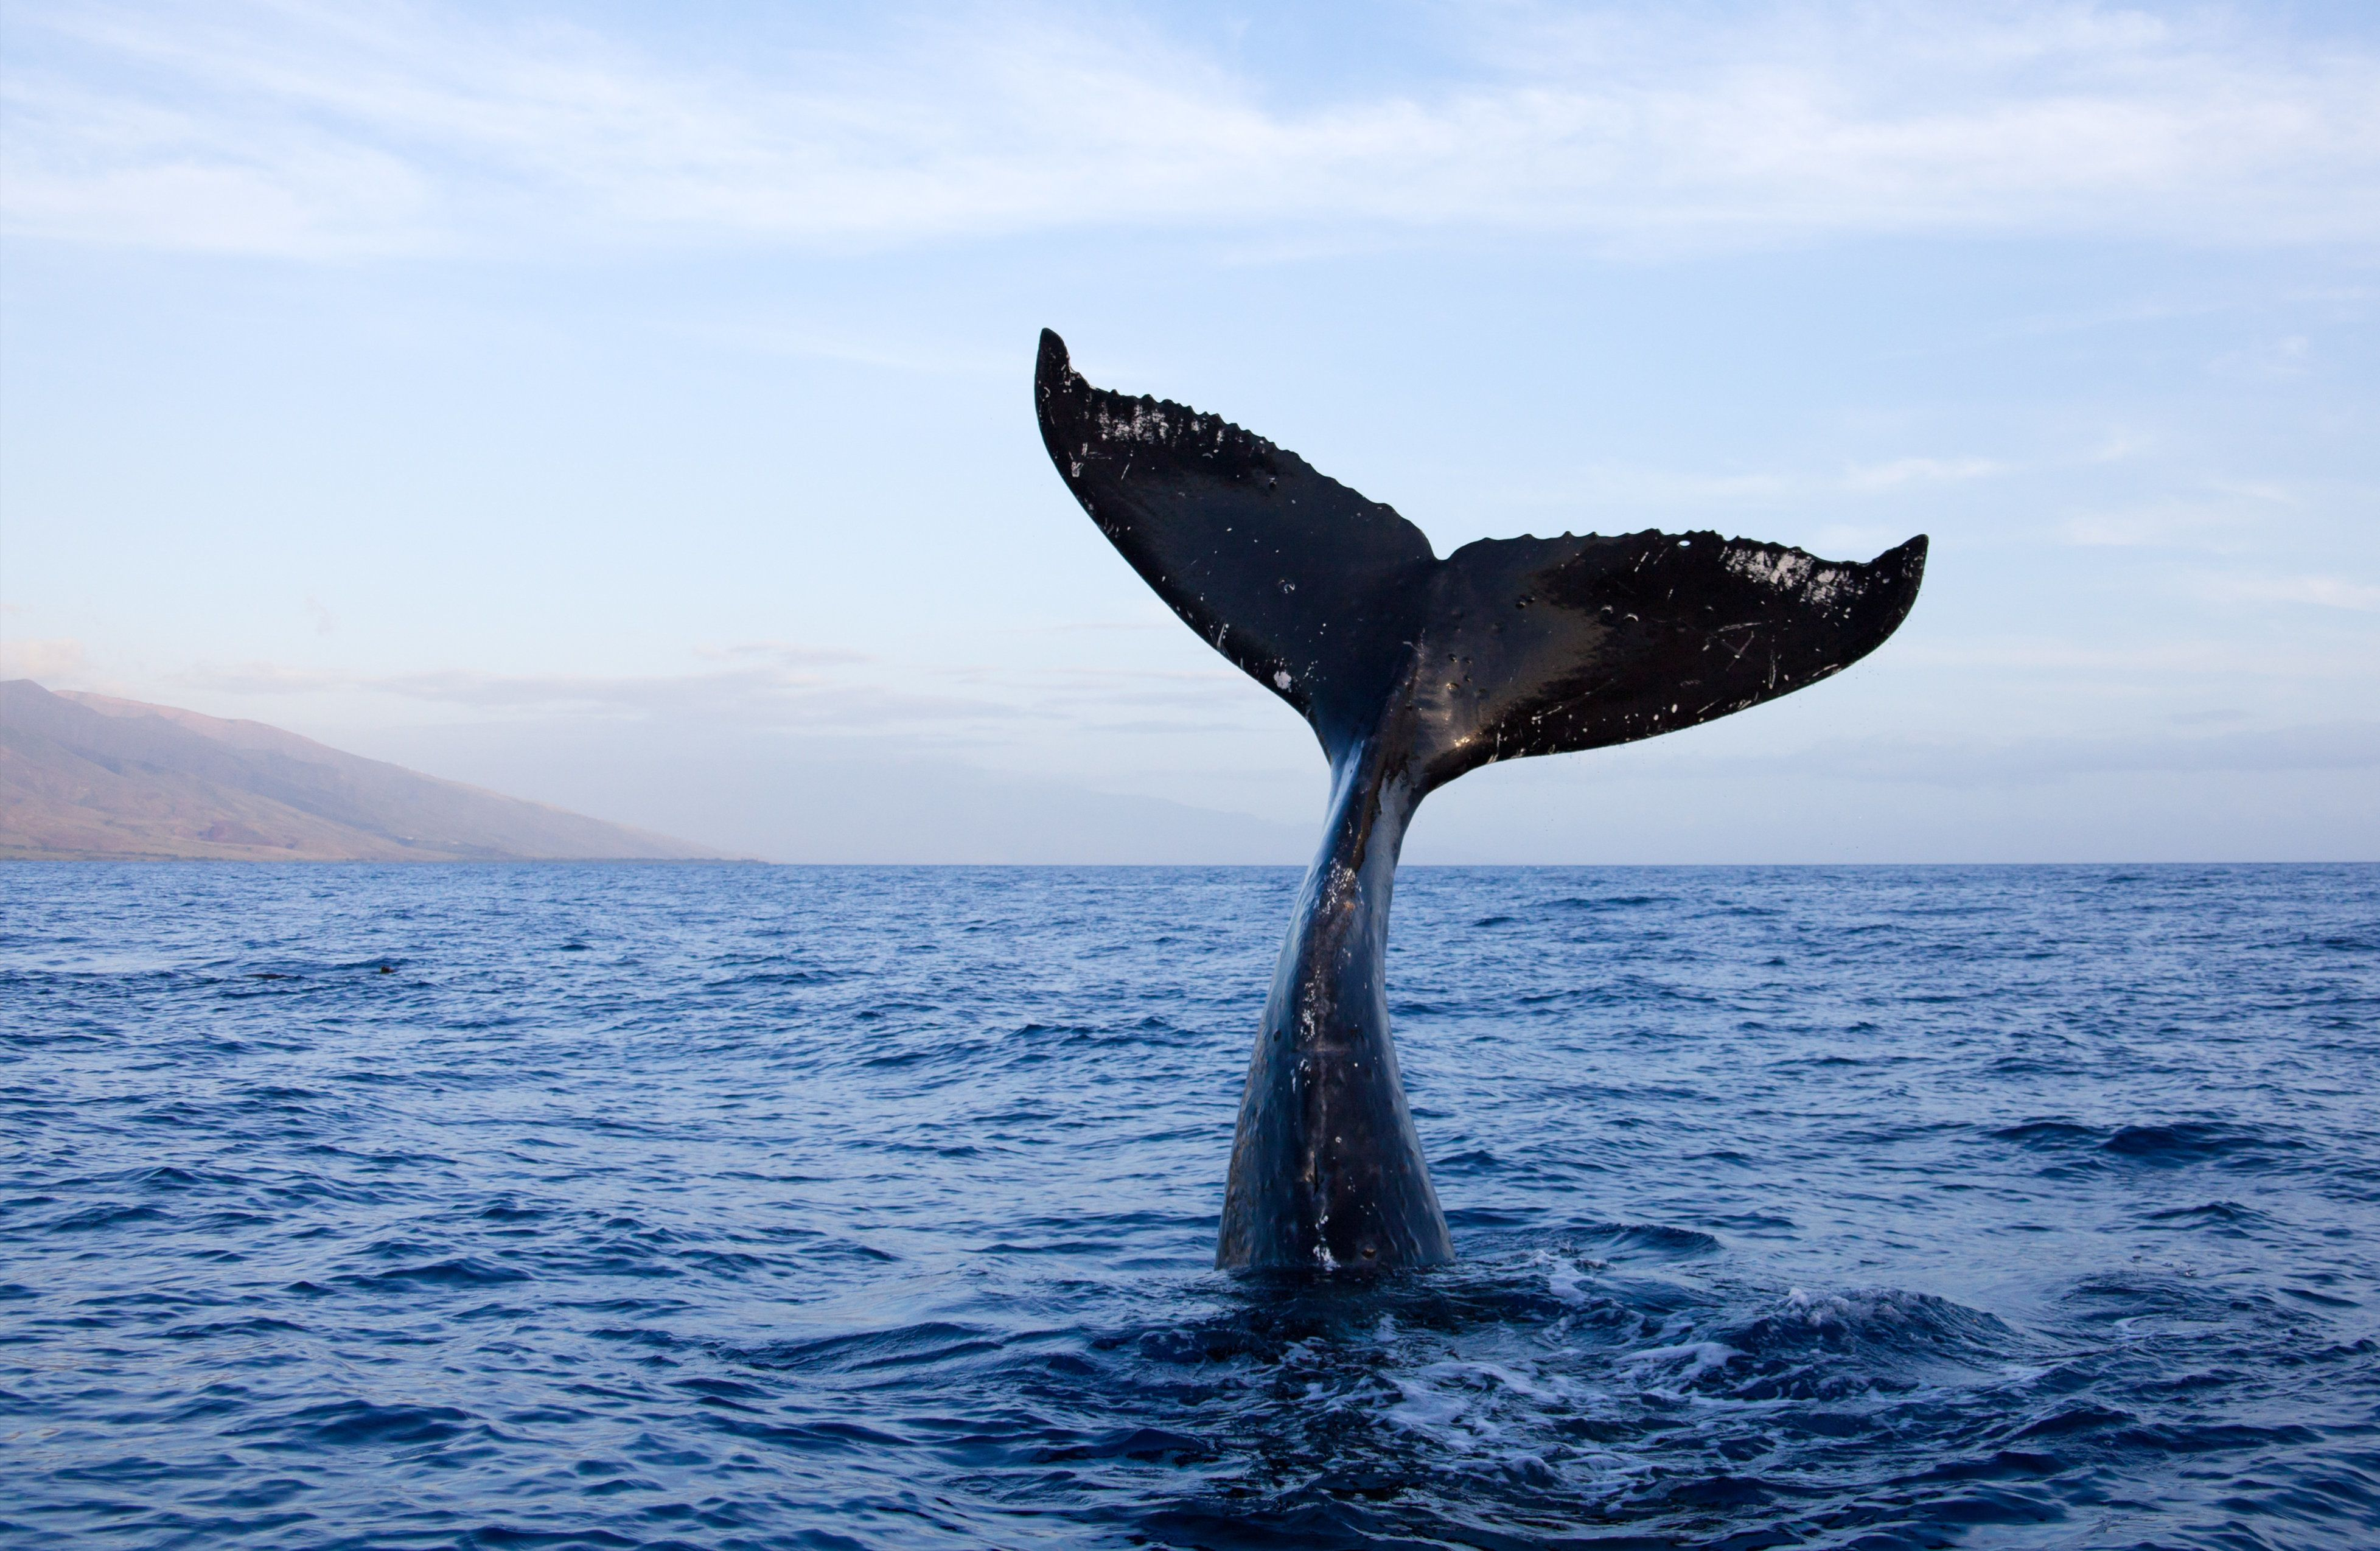 Humpback whale tail high out of water in Maui, Hawaii.